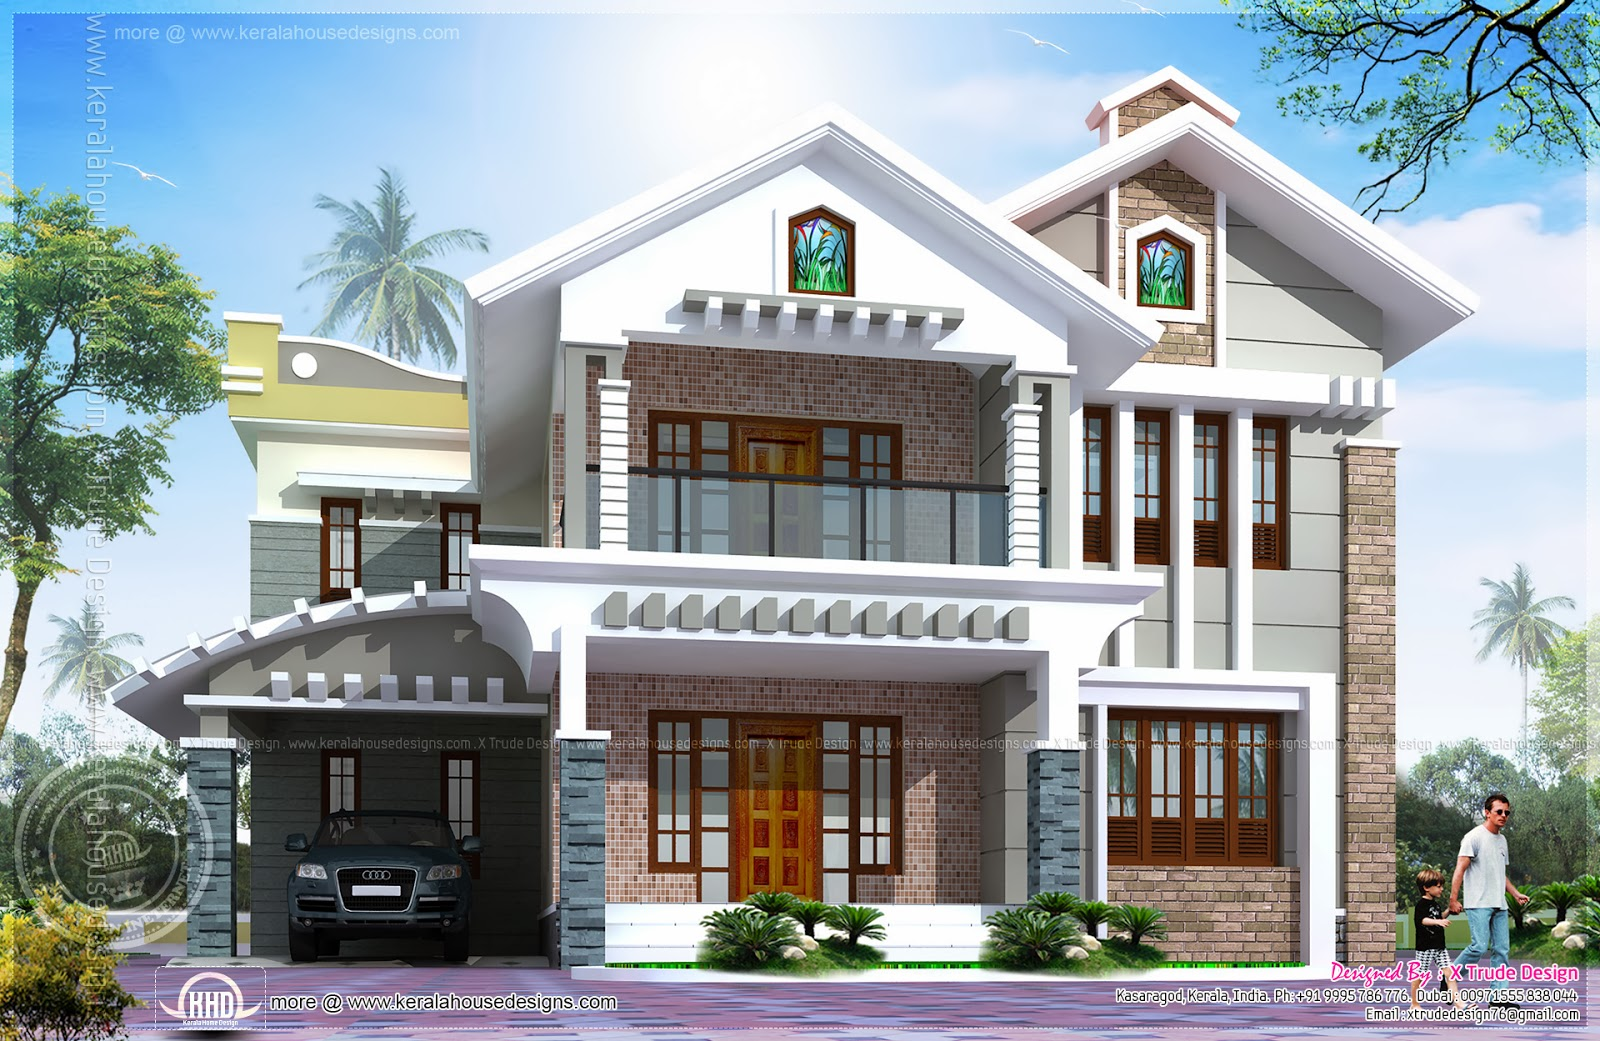 Luxury villa exterior designs the image for Exterior villa design photo gallery